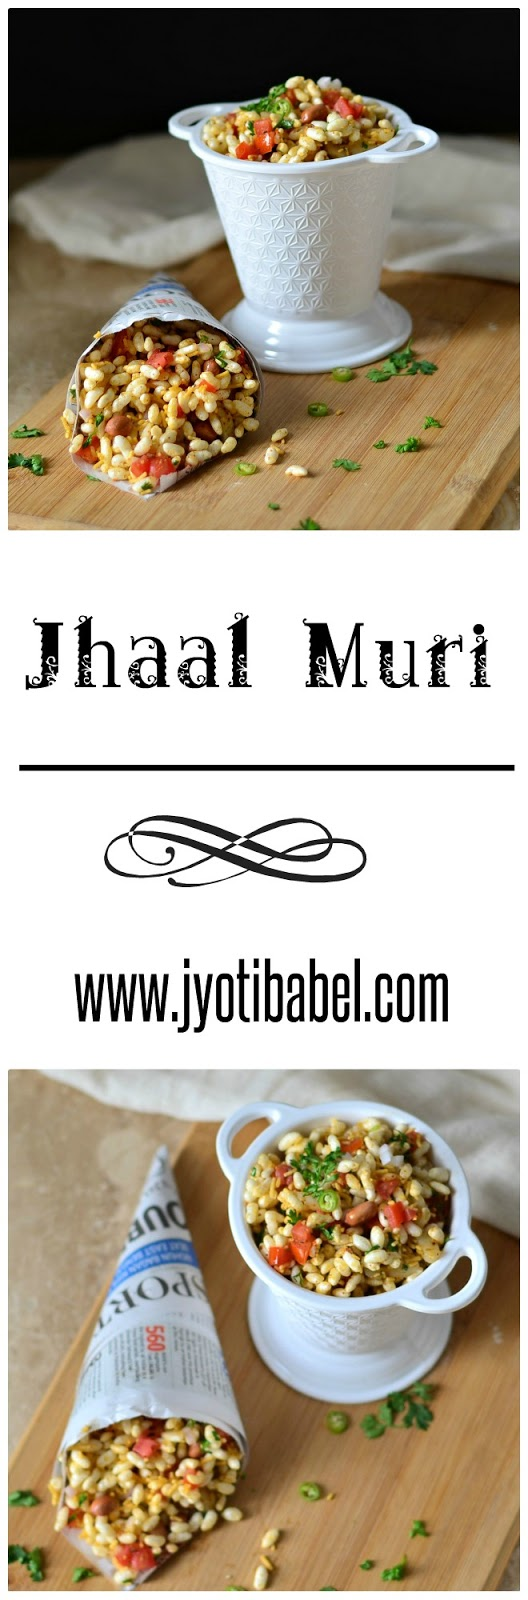 Jhal Muri Recipe - A healthy and easy snack recipe to munch on from the streets on Kolkata| www.jyotibabel.com